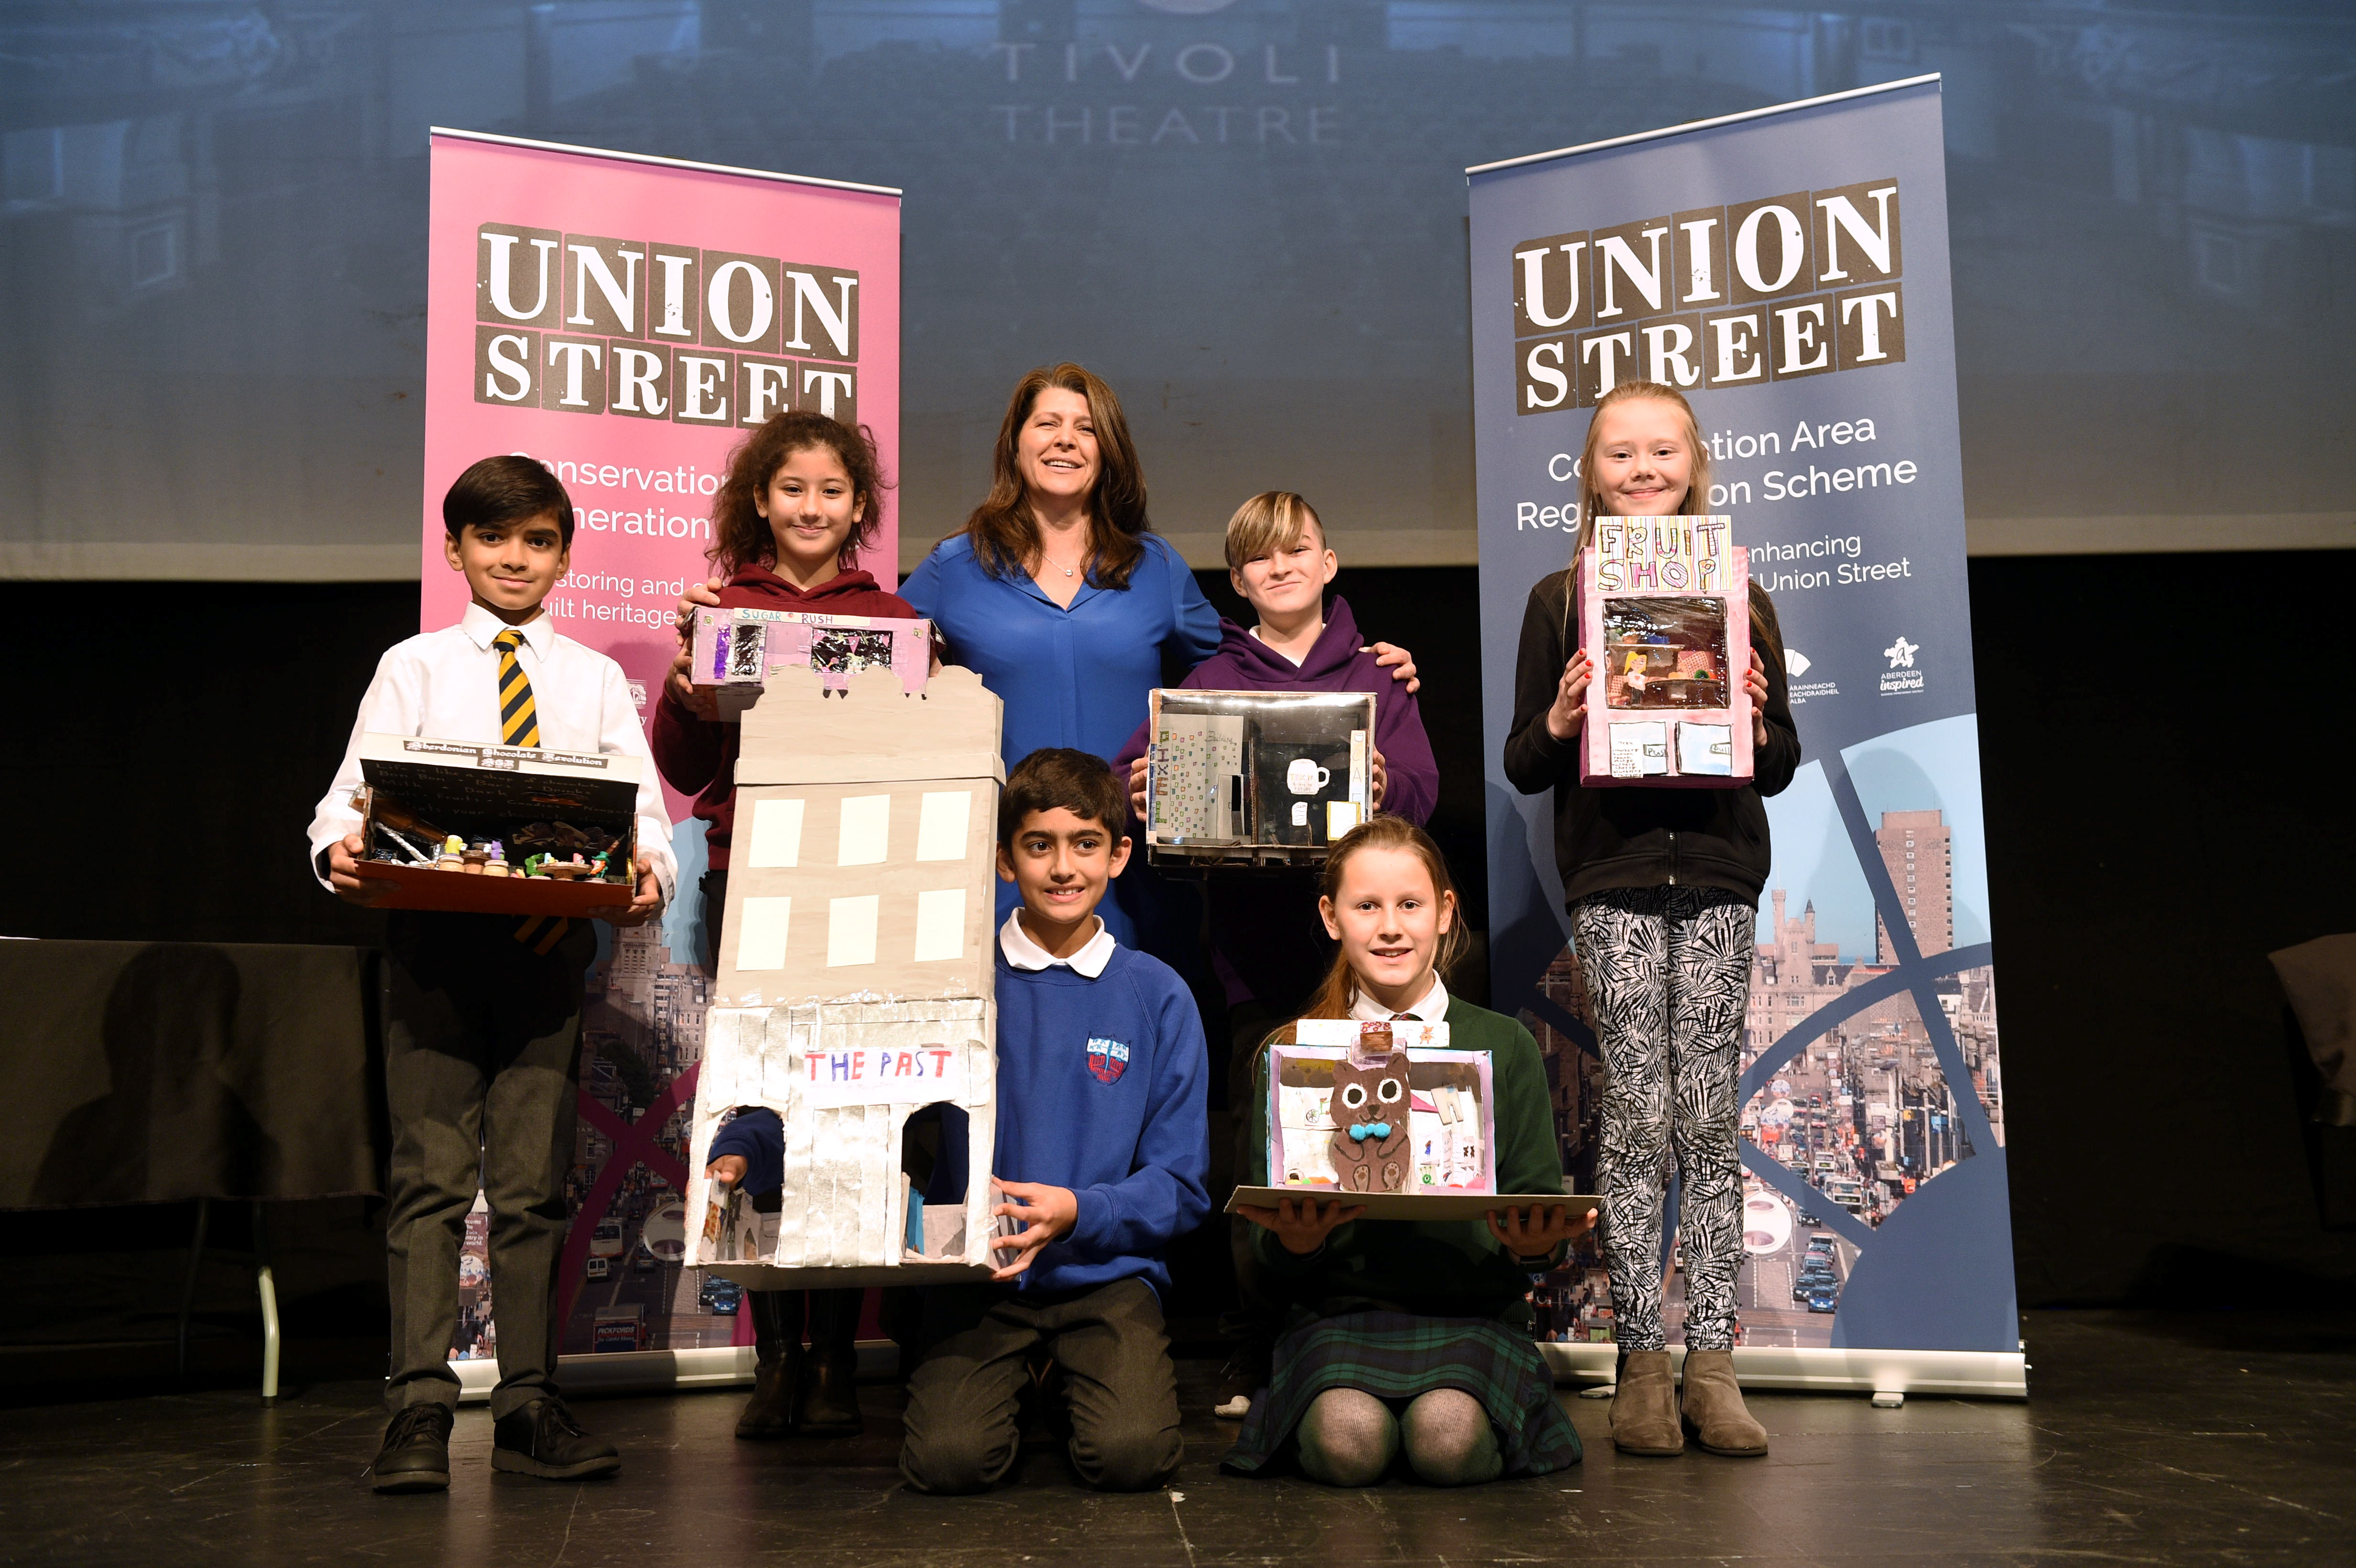 City school children have been involved in a project designing their ideal shops for Union Street.